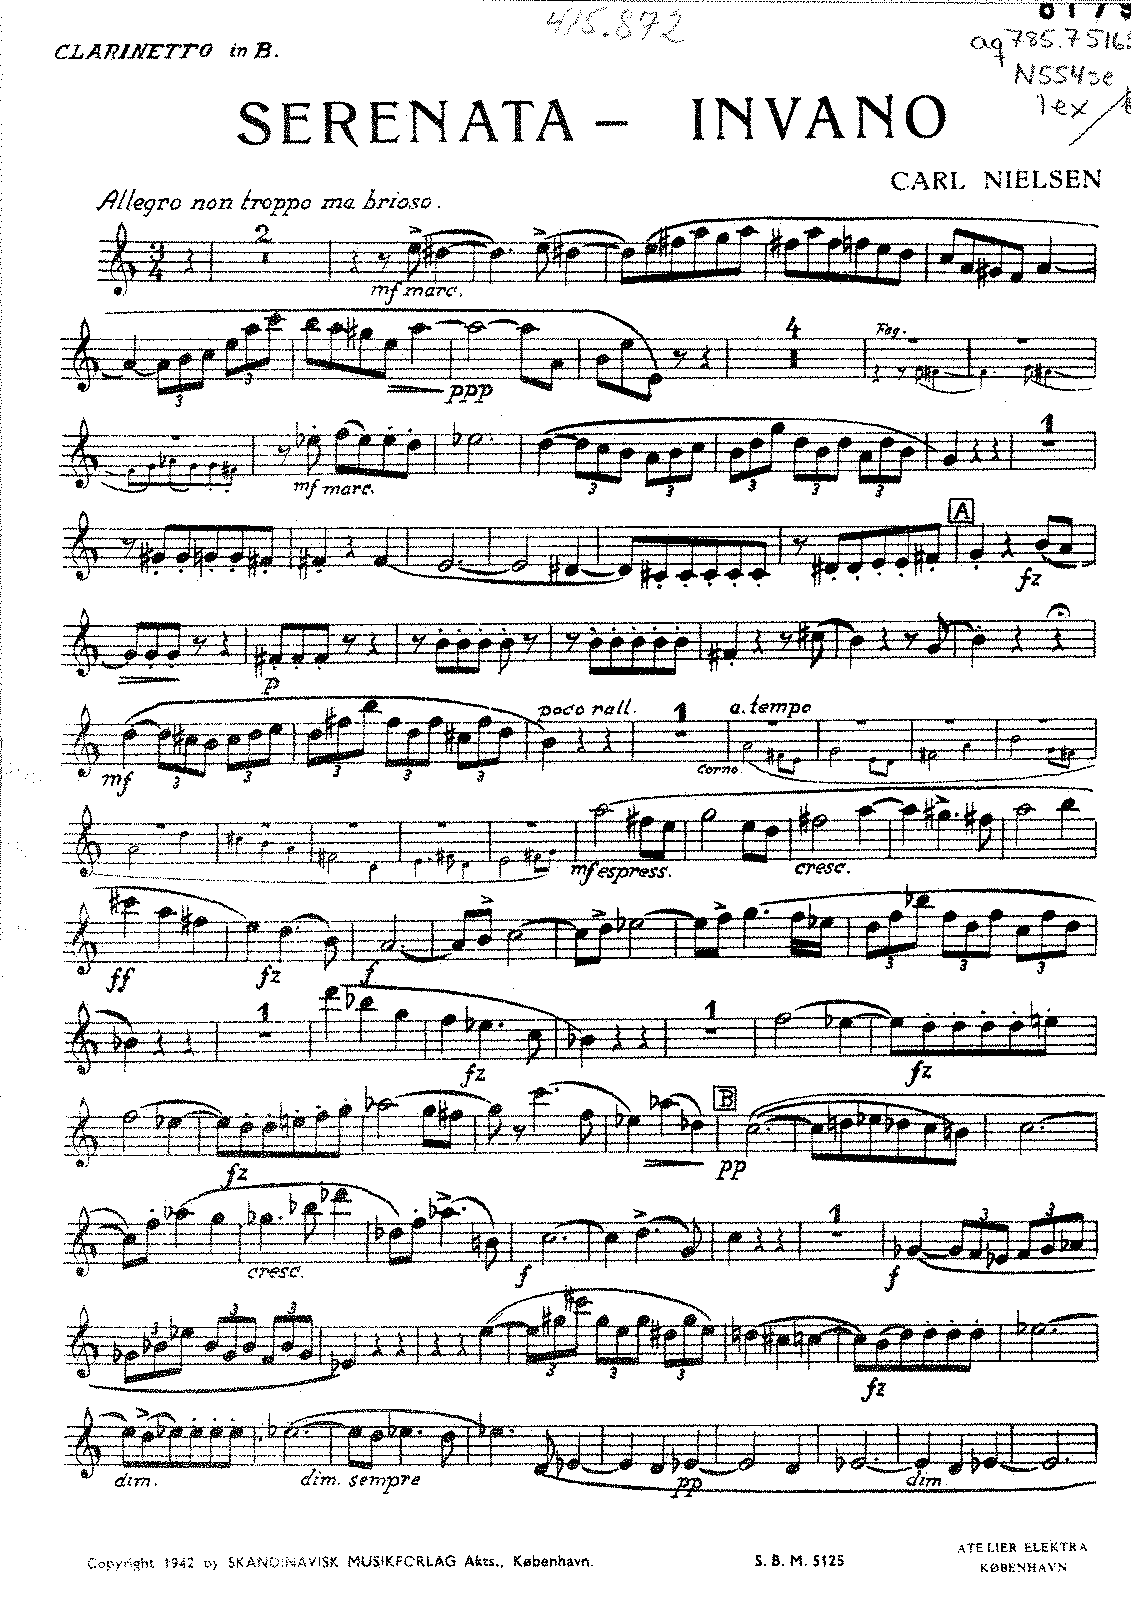 PMLP488672-Serenata in vano cl.pdf